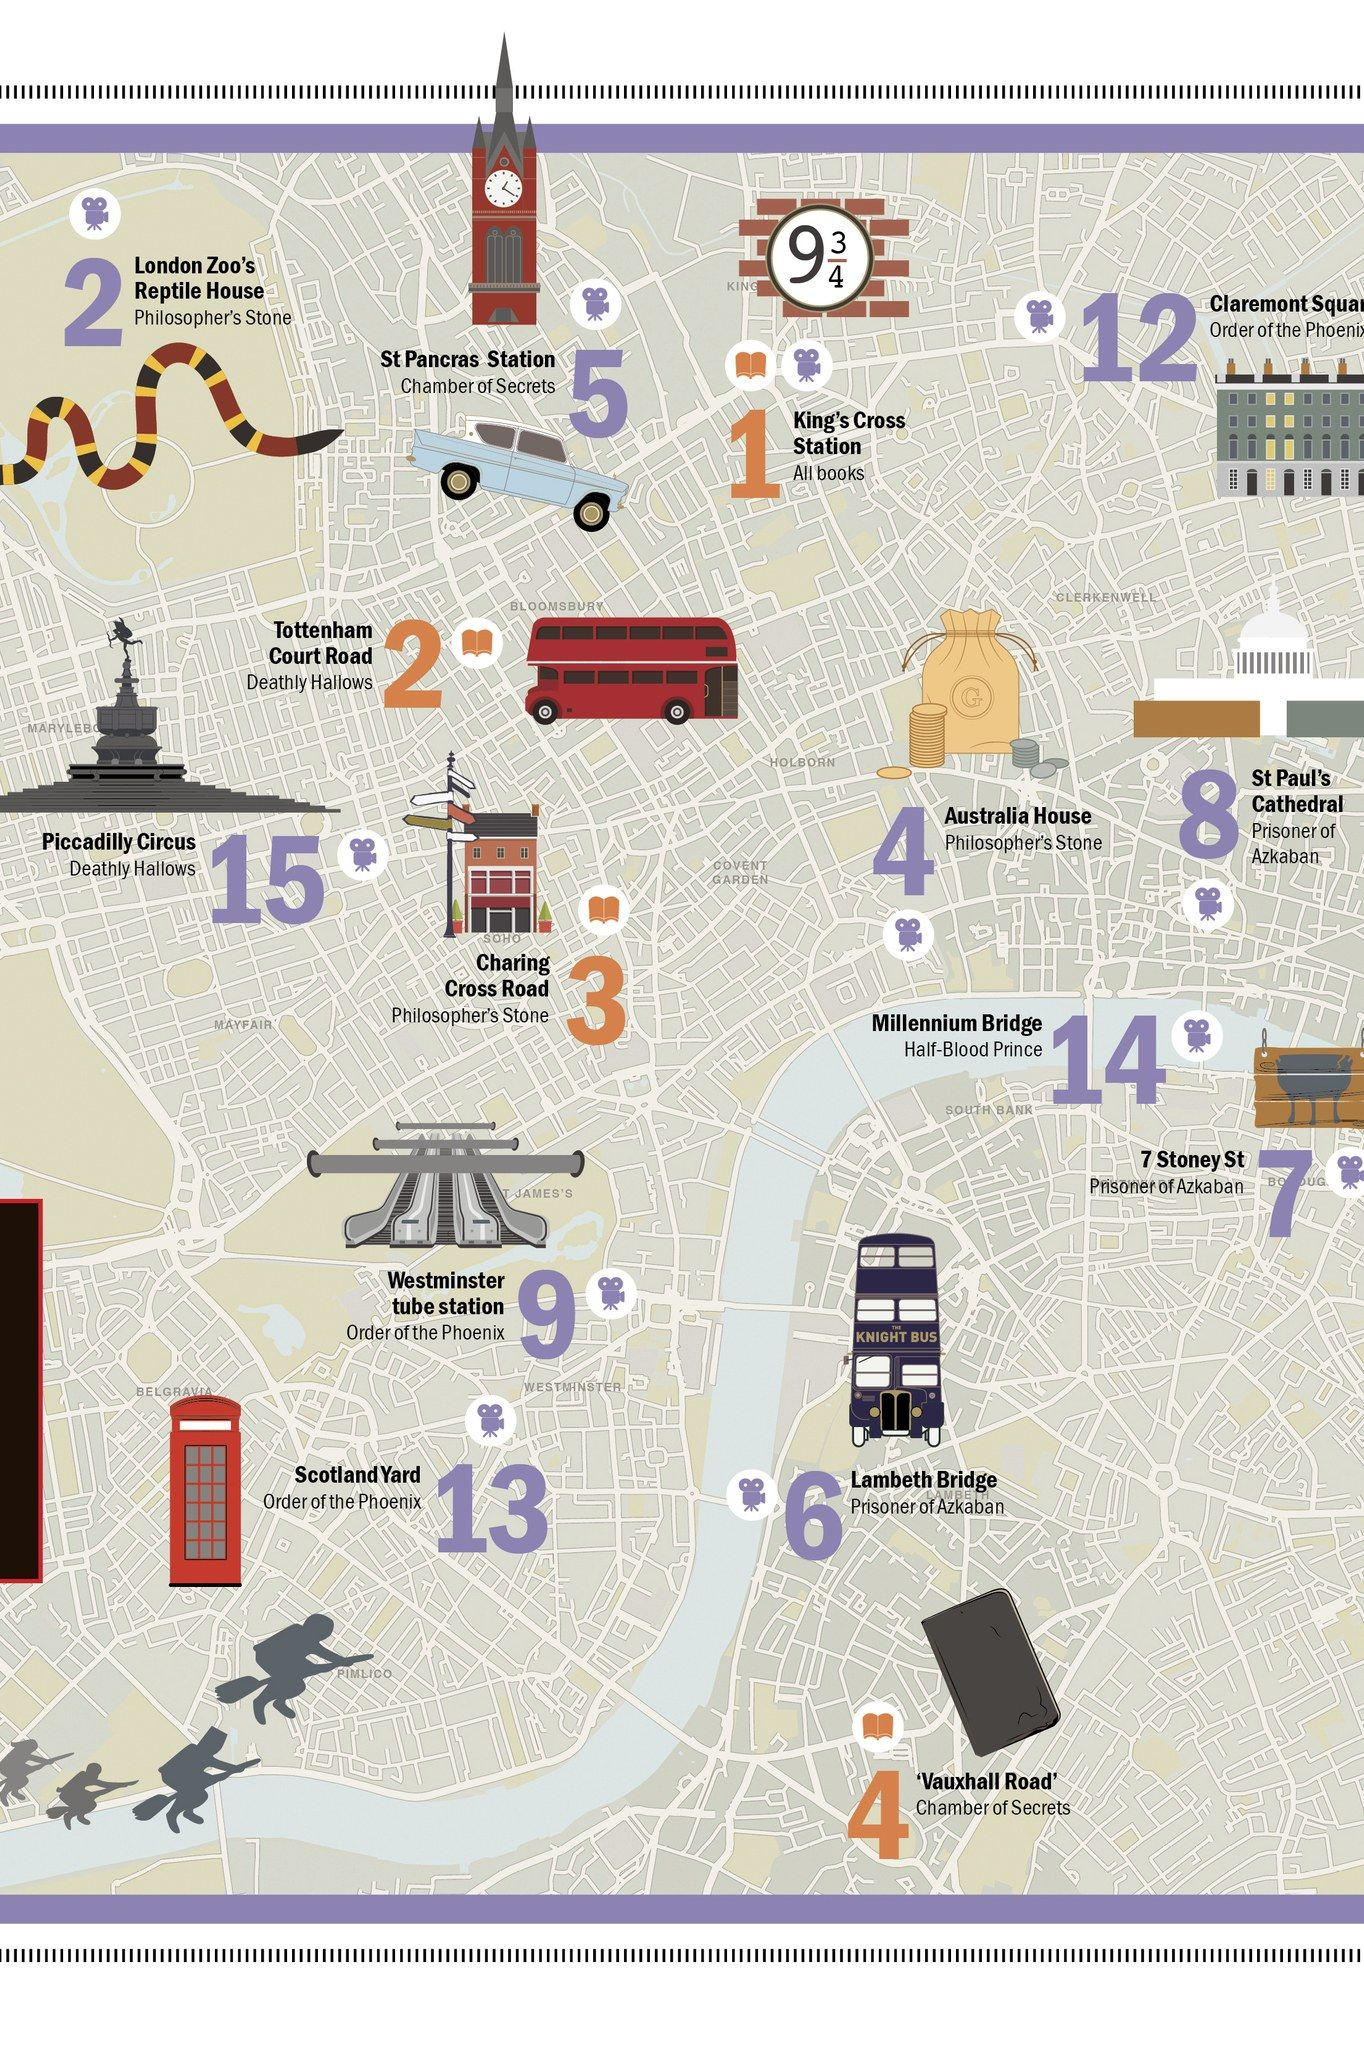 Harry Potter London Tour Map.Potterheads Now Have An Official Map Of Harry Potter S